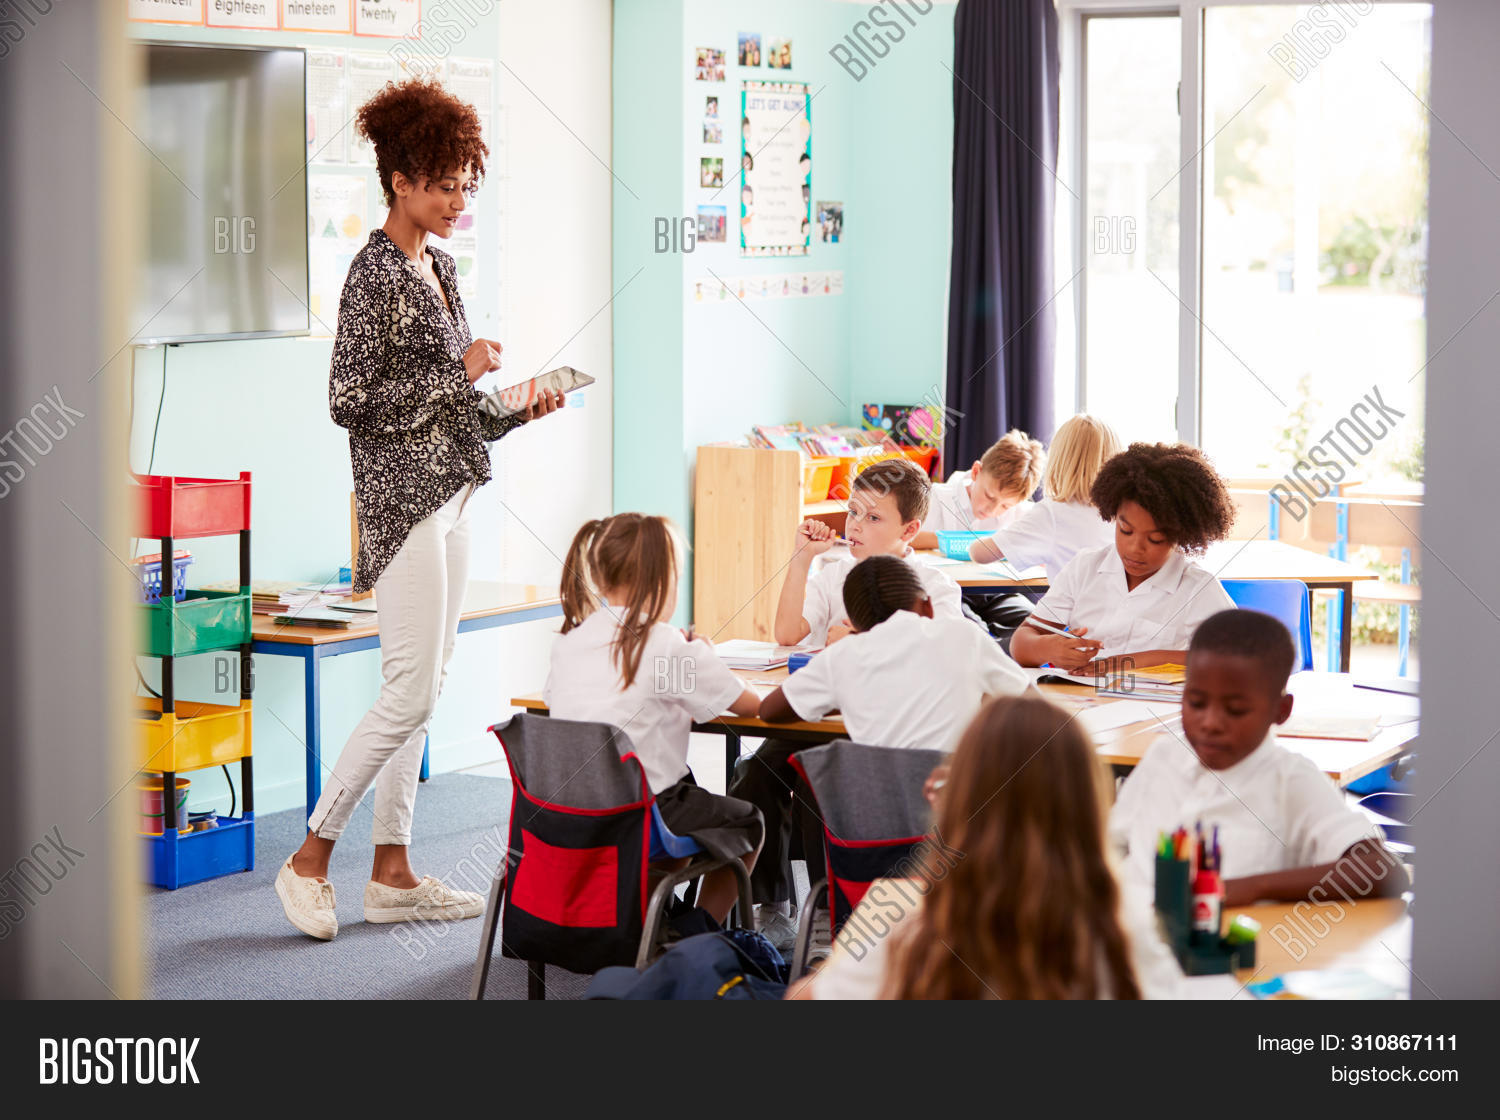 20s,7 years old,8 years old,african american,black,boy,caucasian,child,children,class,classroom,connected,desk,digital tablet,education,elementary,female,front view,girl,group,horizontal,independent school,learning,listening,male,multi-cultural,occupation,online,people,person,primary,private school,public school,pupils,school,sitting,smiling,students,tablet computer,teacher,teaching,technology,together,touchscreen,twenties,uniform,woman,women